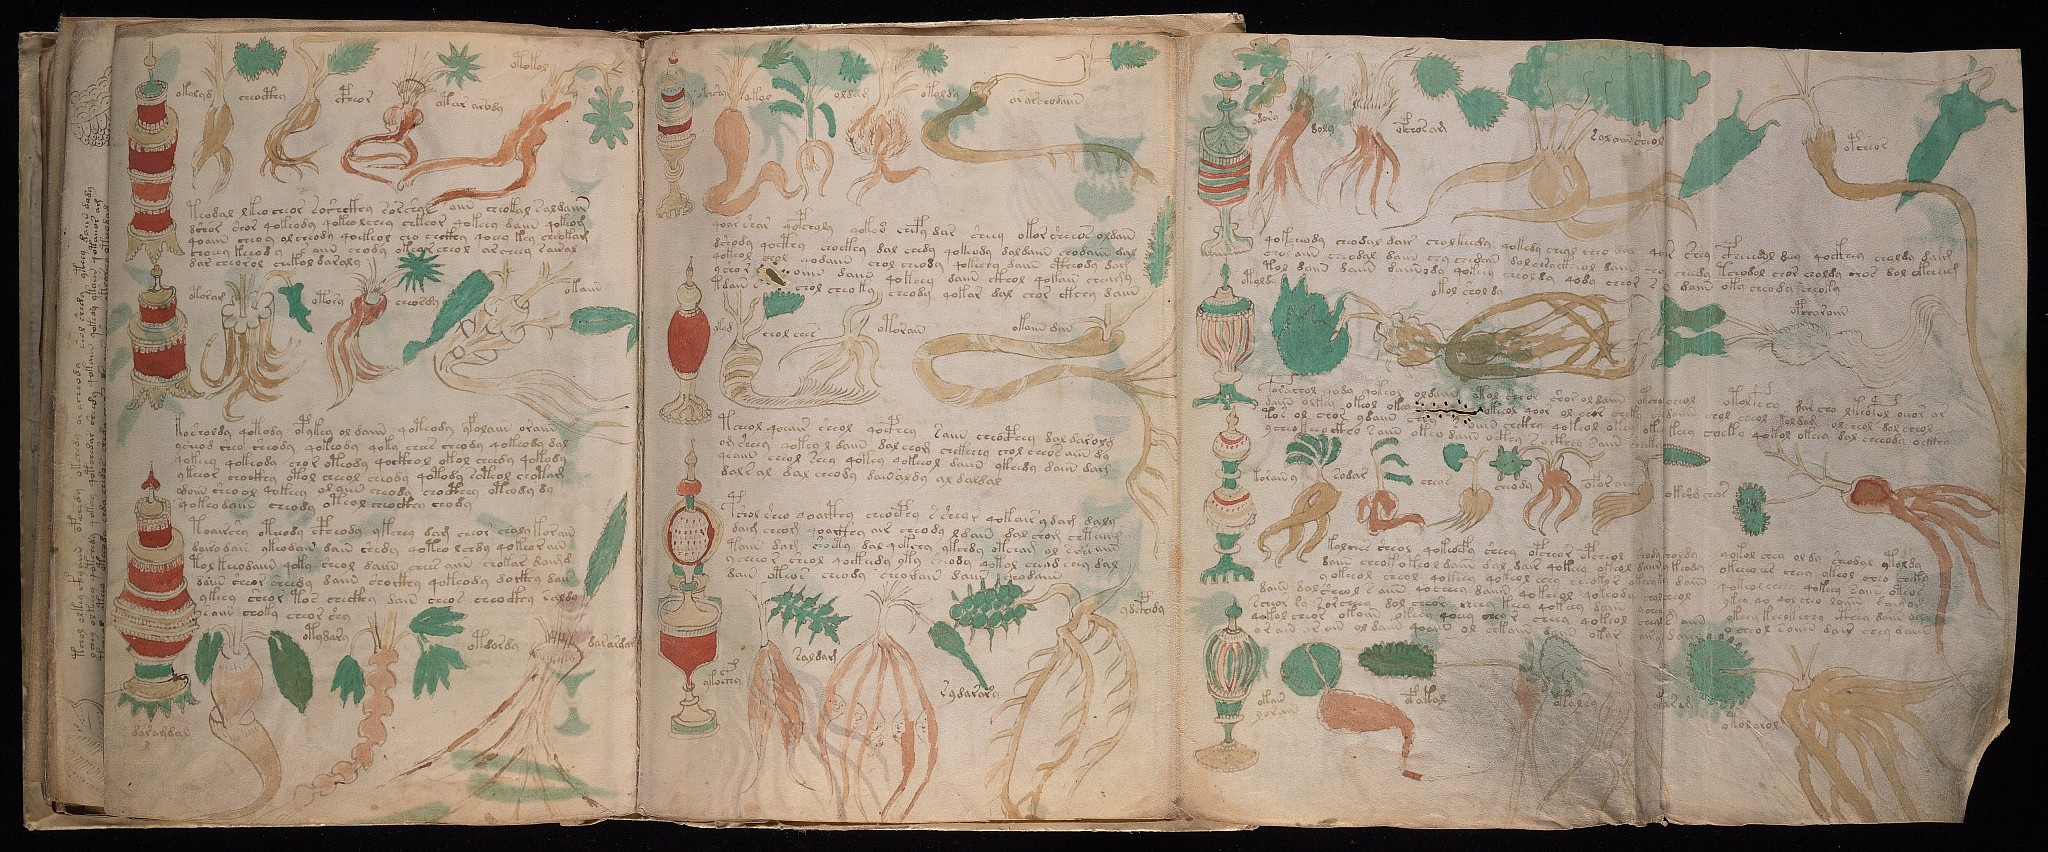 A four-page fold-out from the Voynich Manuscript, scanned by Yale University's Beinecke Rare Book and Manuscript Library